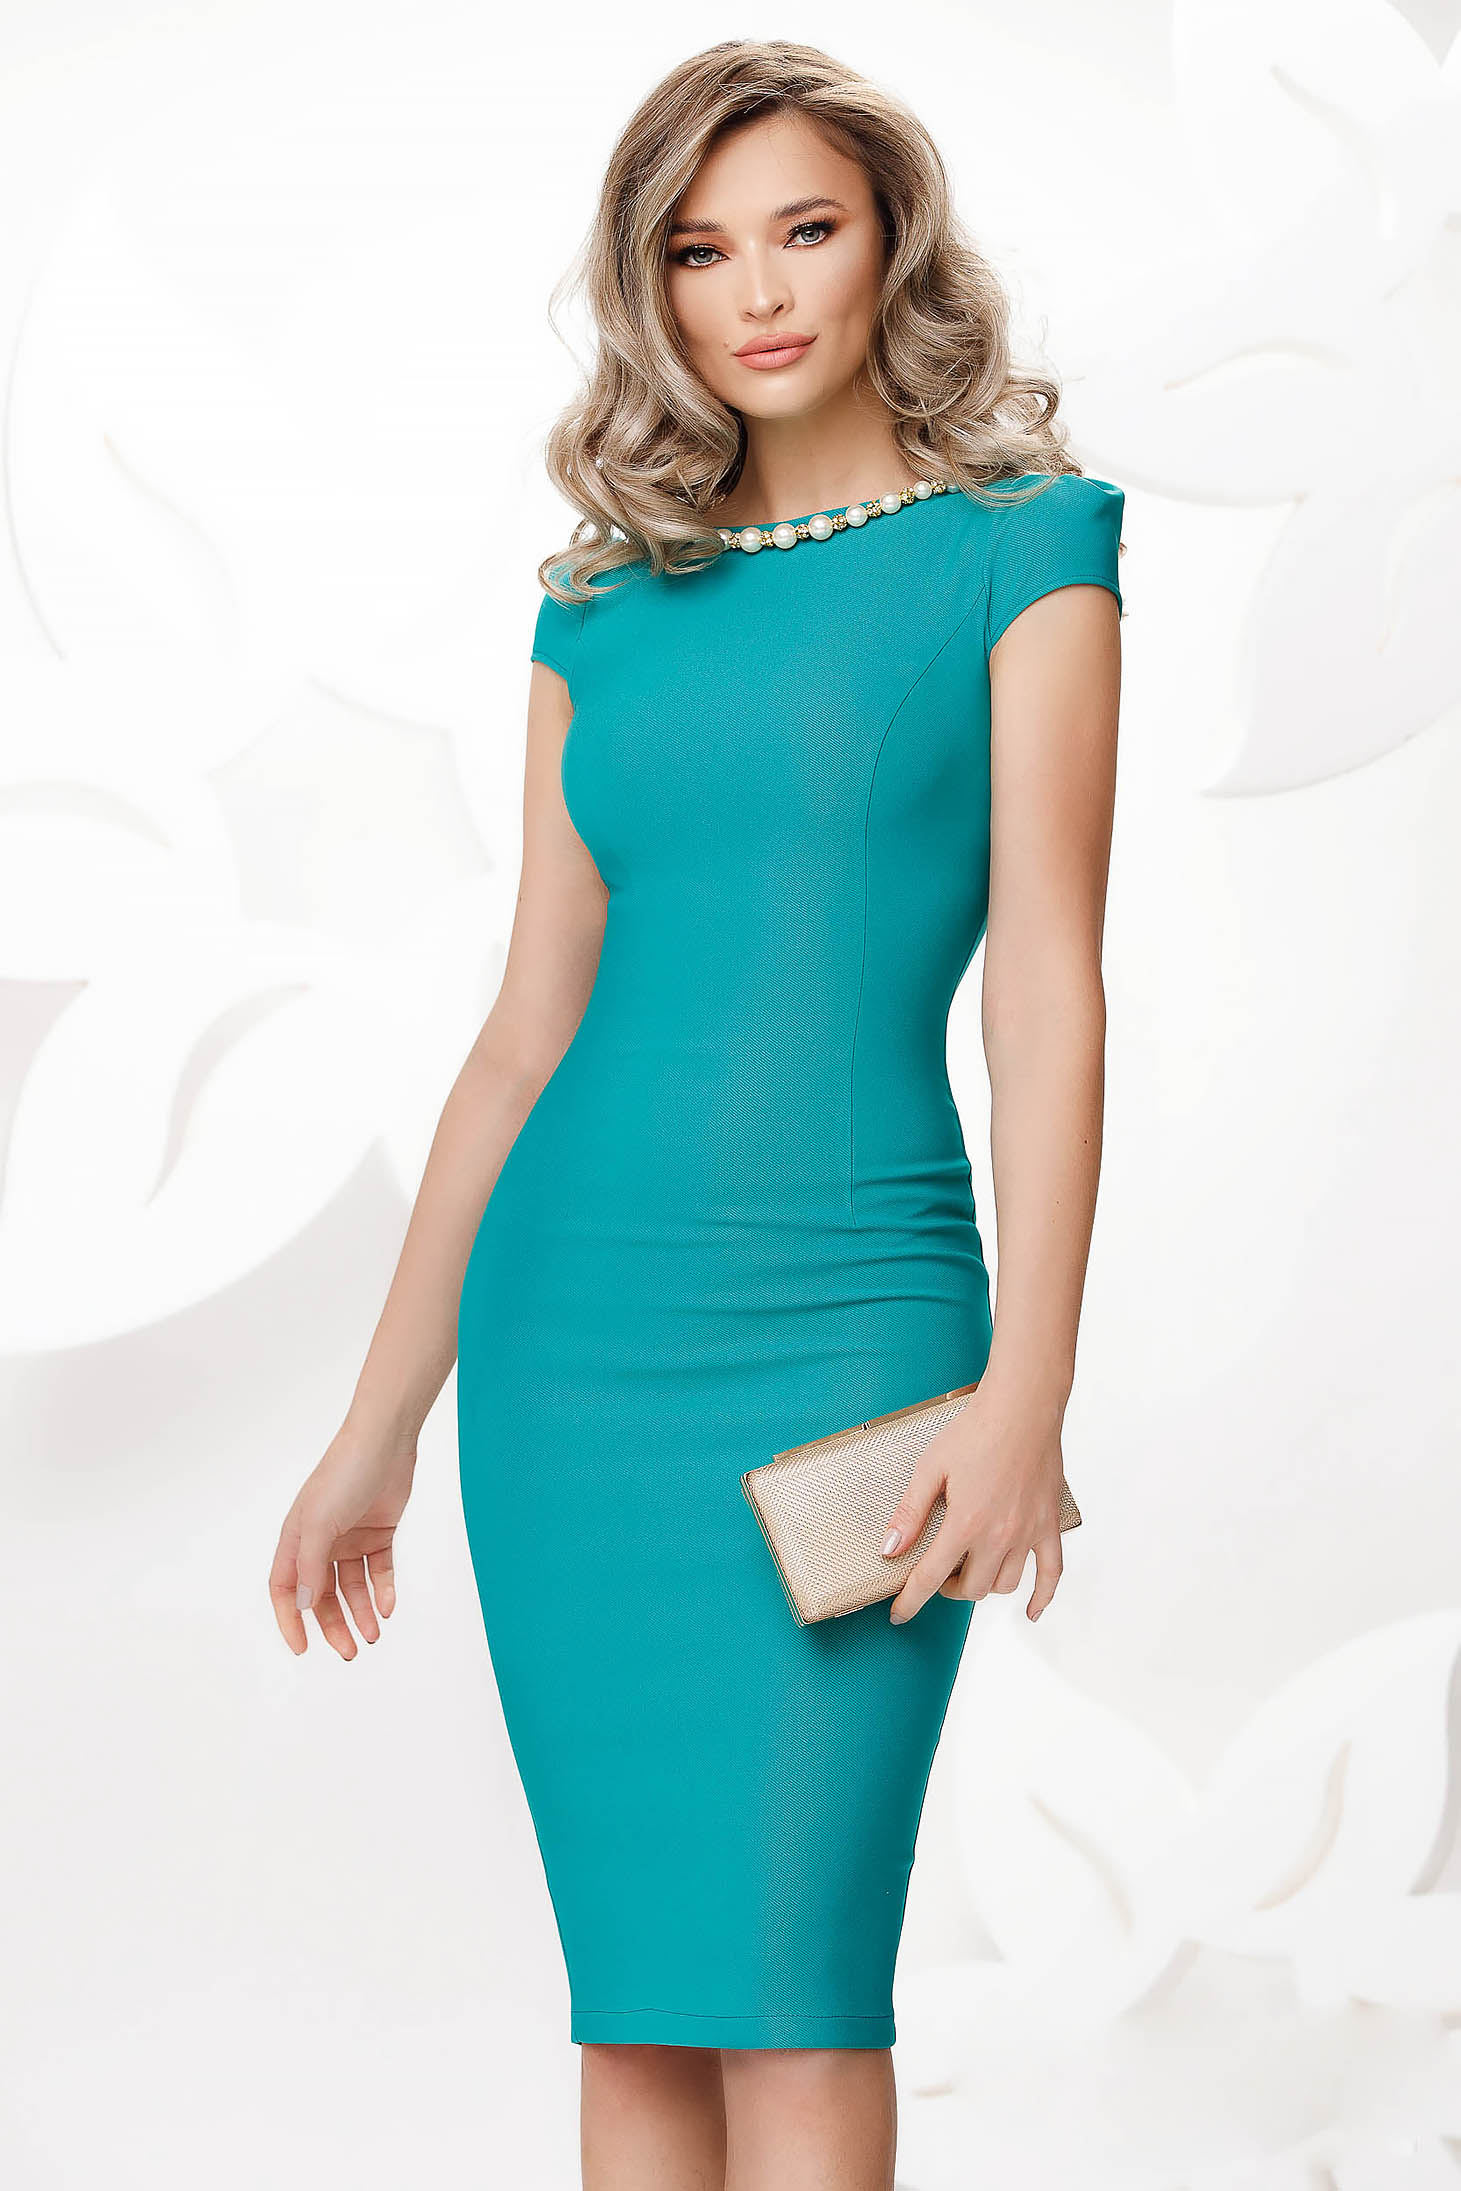 Turquoise occasional midi pencil dress slightly elastic fabric with pearls